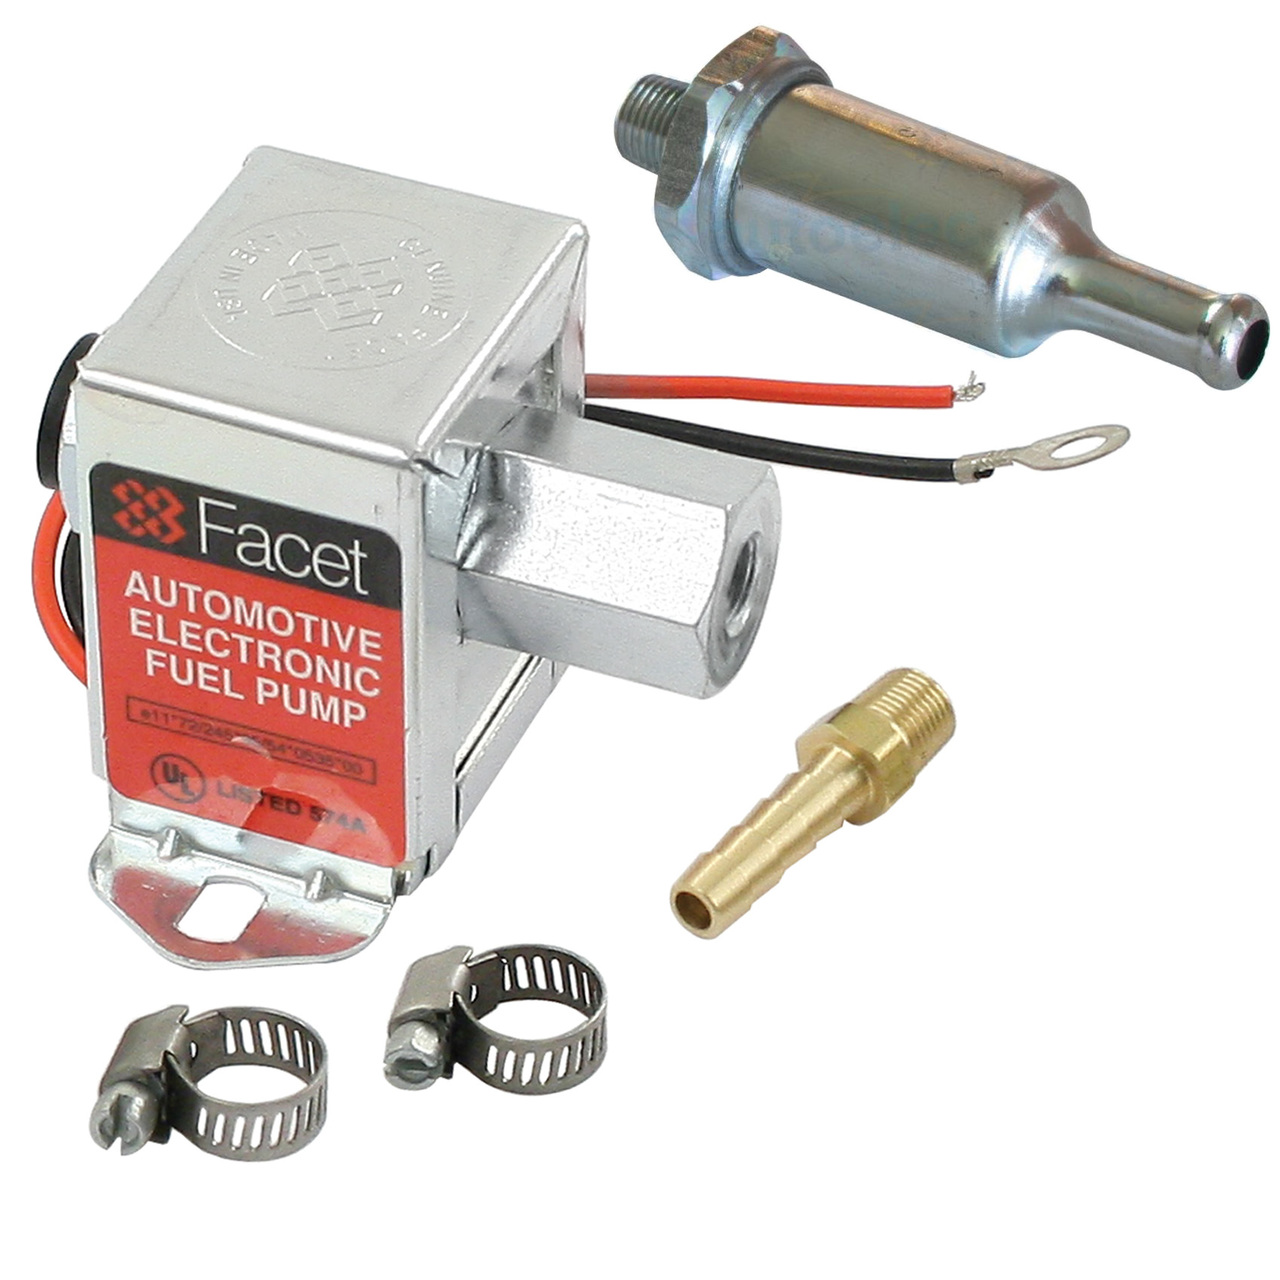 facet fep42sv cube electric fuel pump 1 5 4 psi includes clamps fittings filter [ 1280 x 1280 Pixel ]